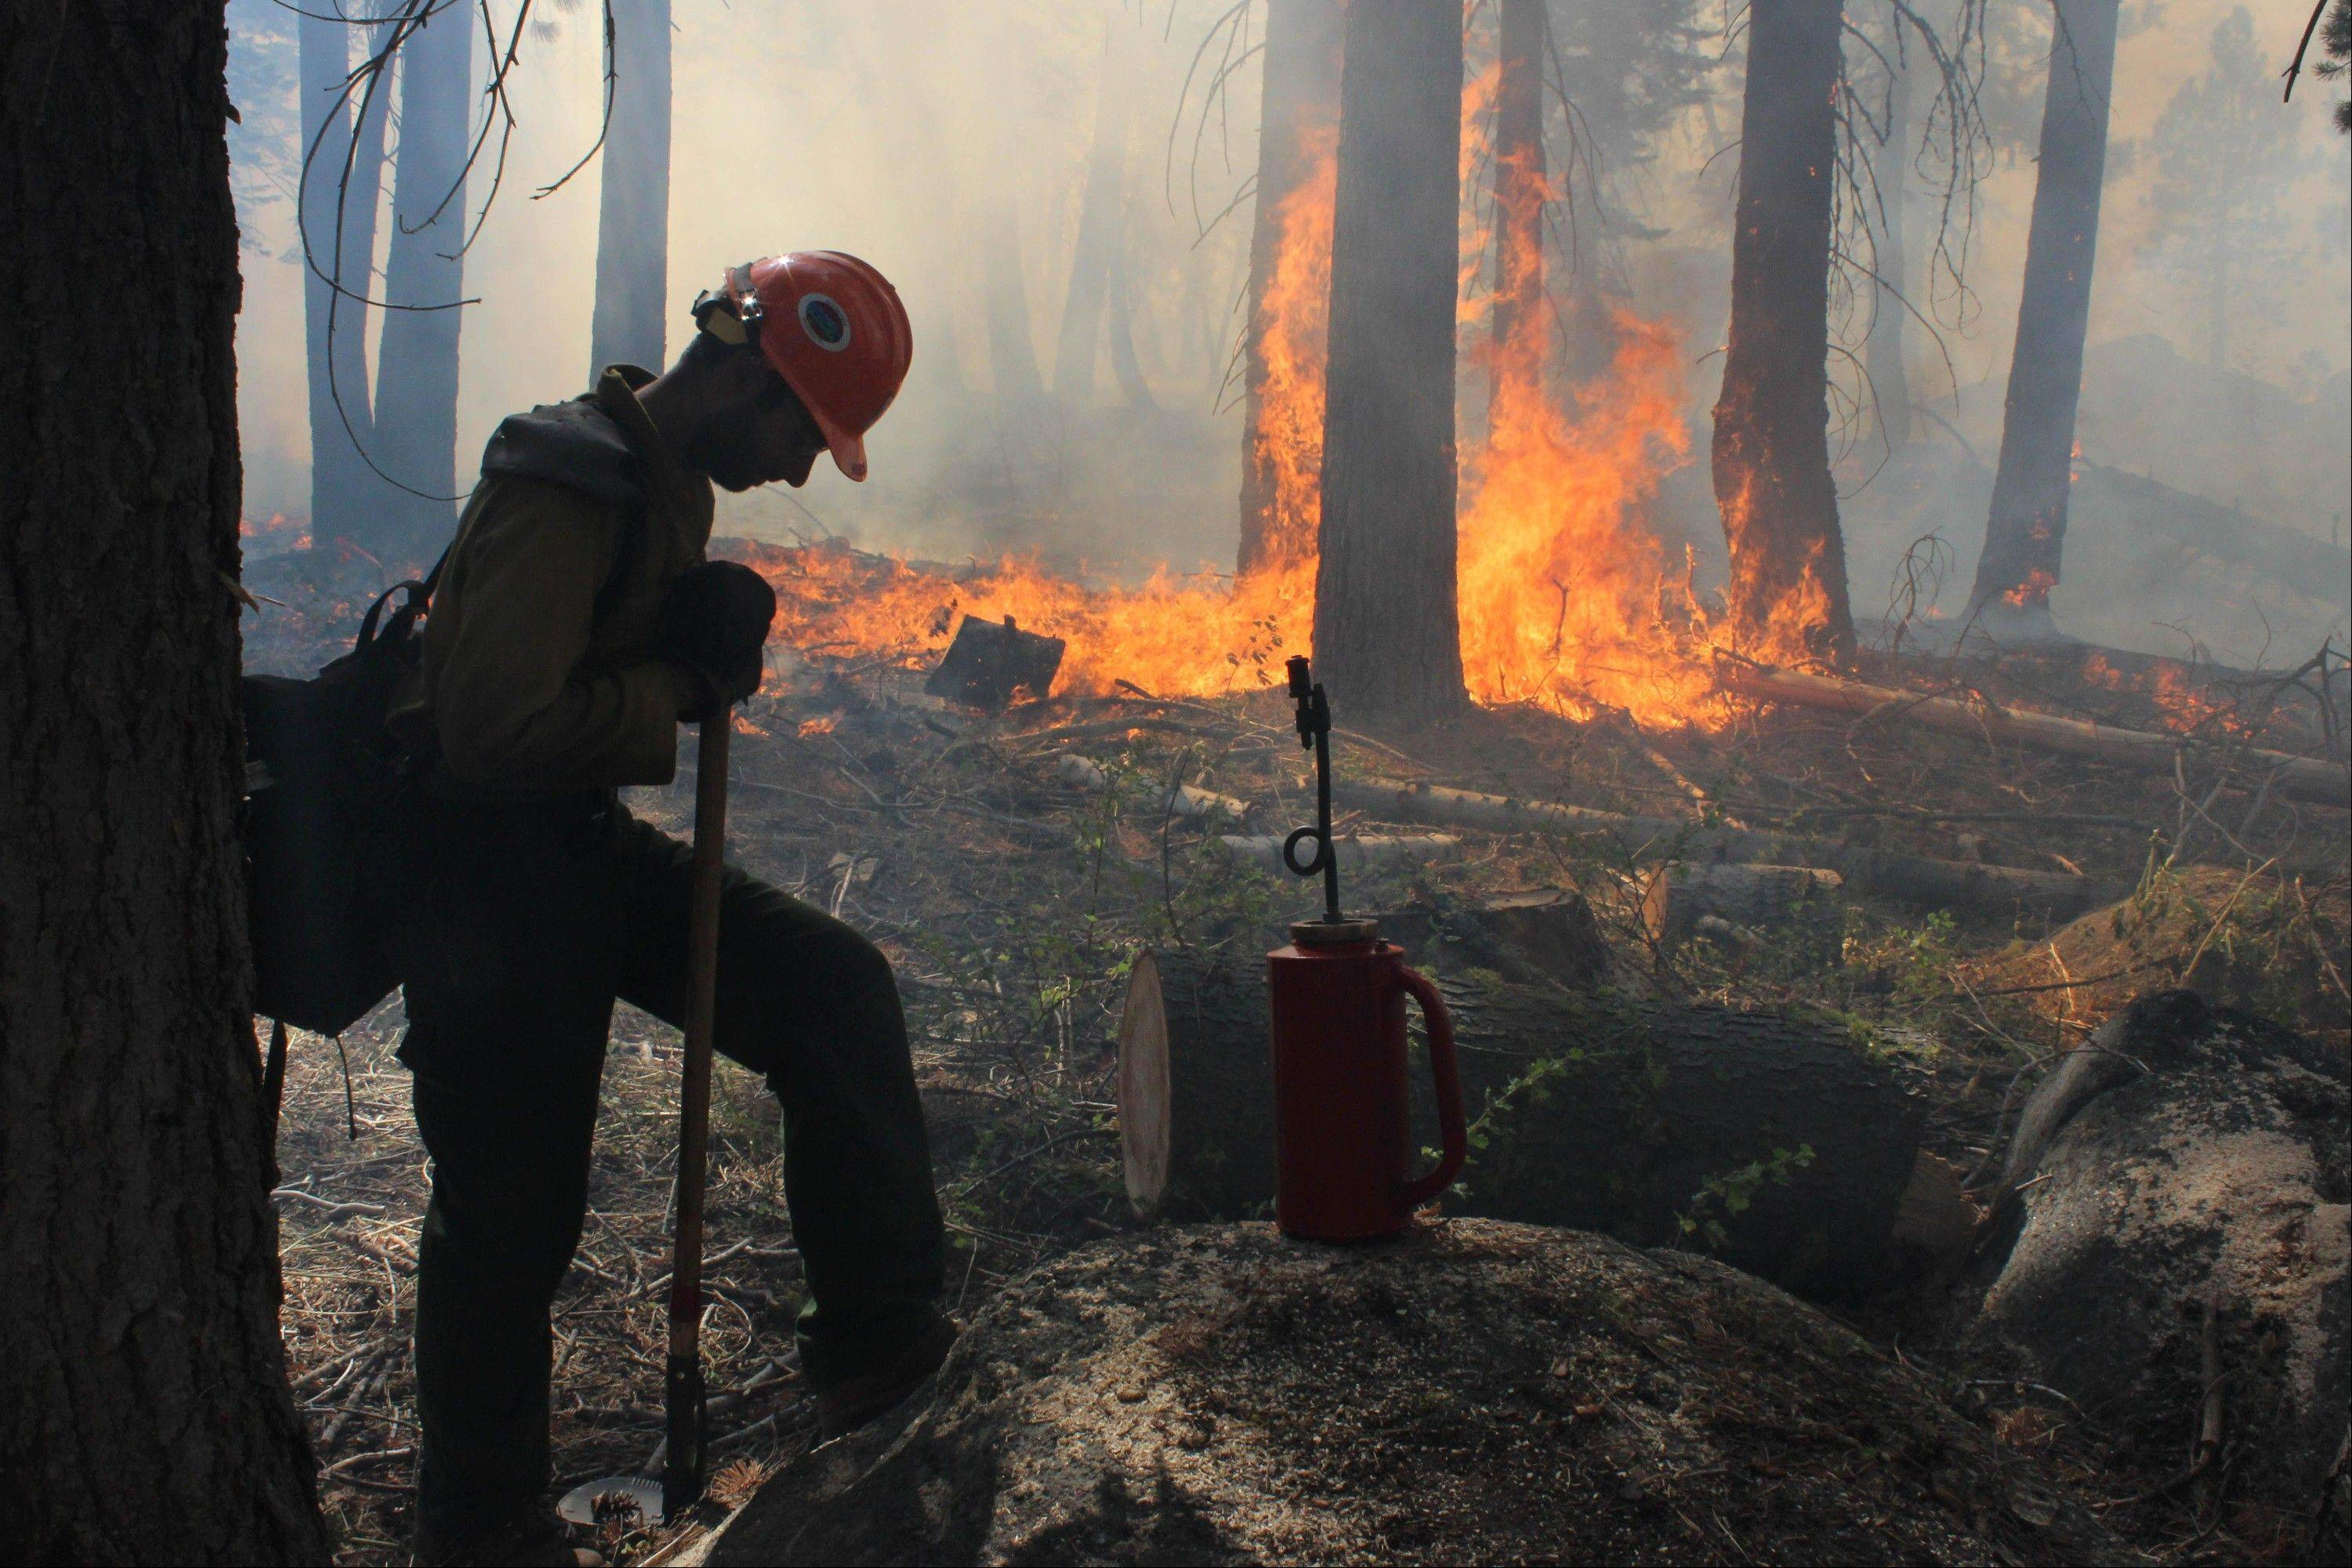 A Hotshot fire crew member rests Wednesday near a controlled burn operation at Horseshoe Meadows, as crews continue to fight the Rim Fire near Yosemite National Park.